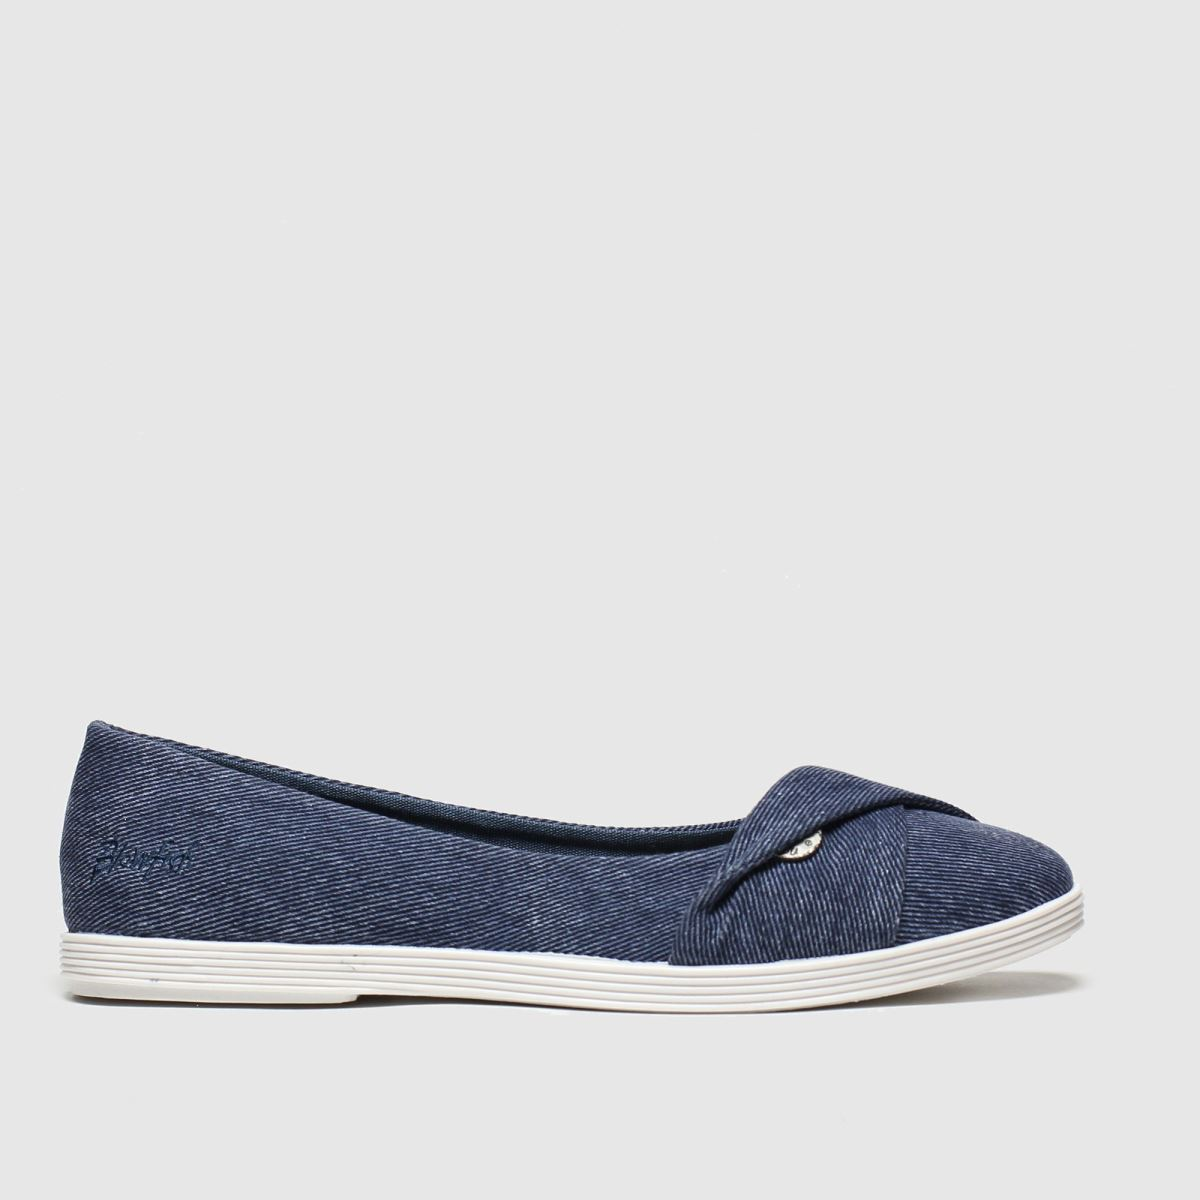 Blowfish Blowfish Blue Tizzy Flat Shoes